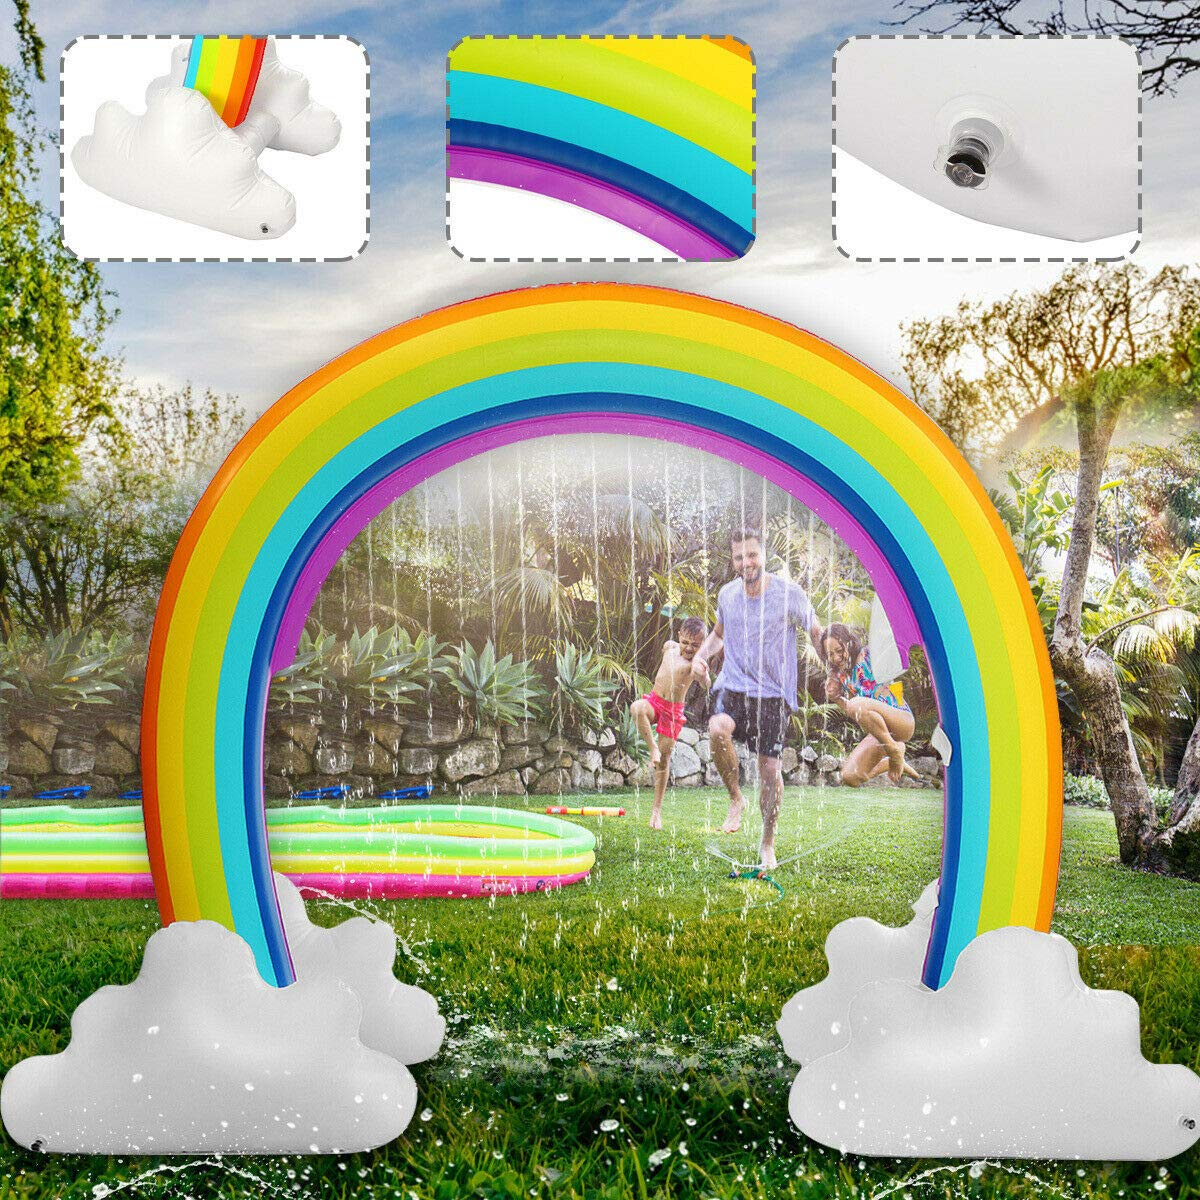 MerryXD Rainbow Sprinkler,Giant Water Inflatable Arch Sprinkler Outdoor Summer Toys for Kids by MerryXD (Image #1)